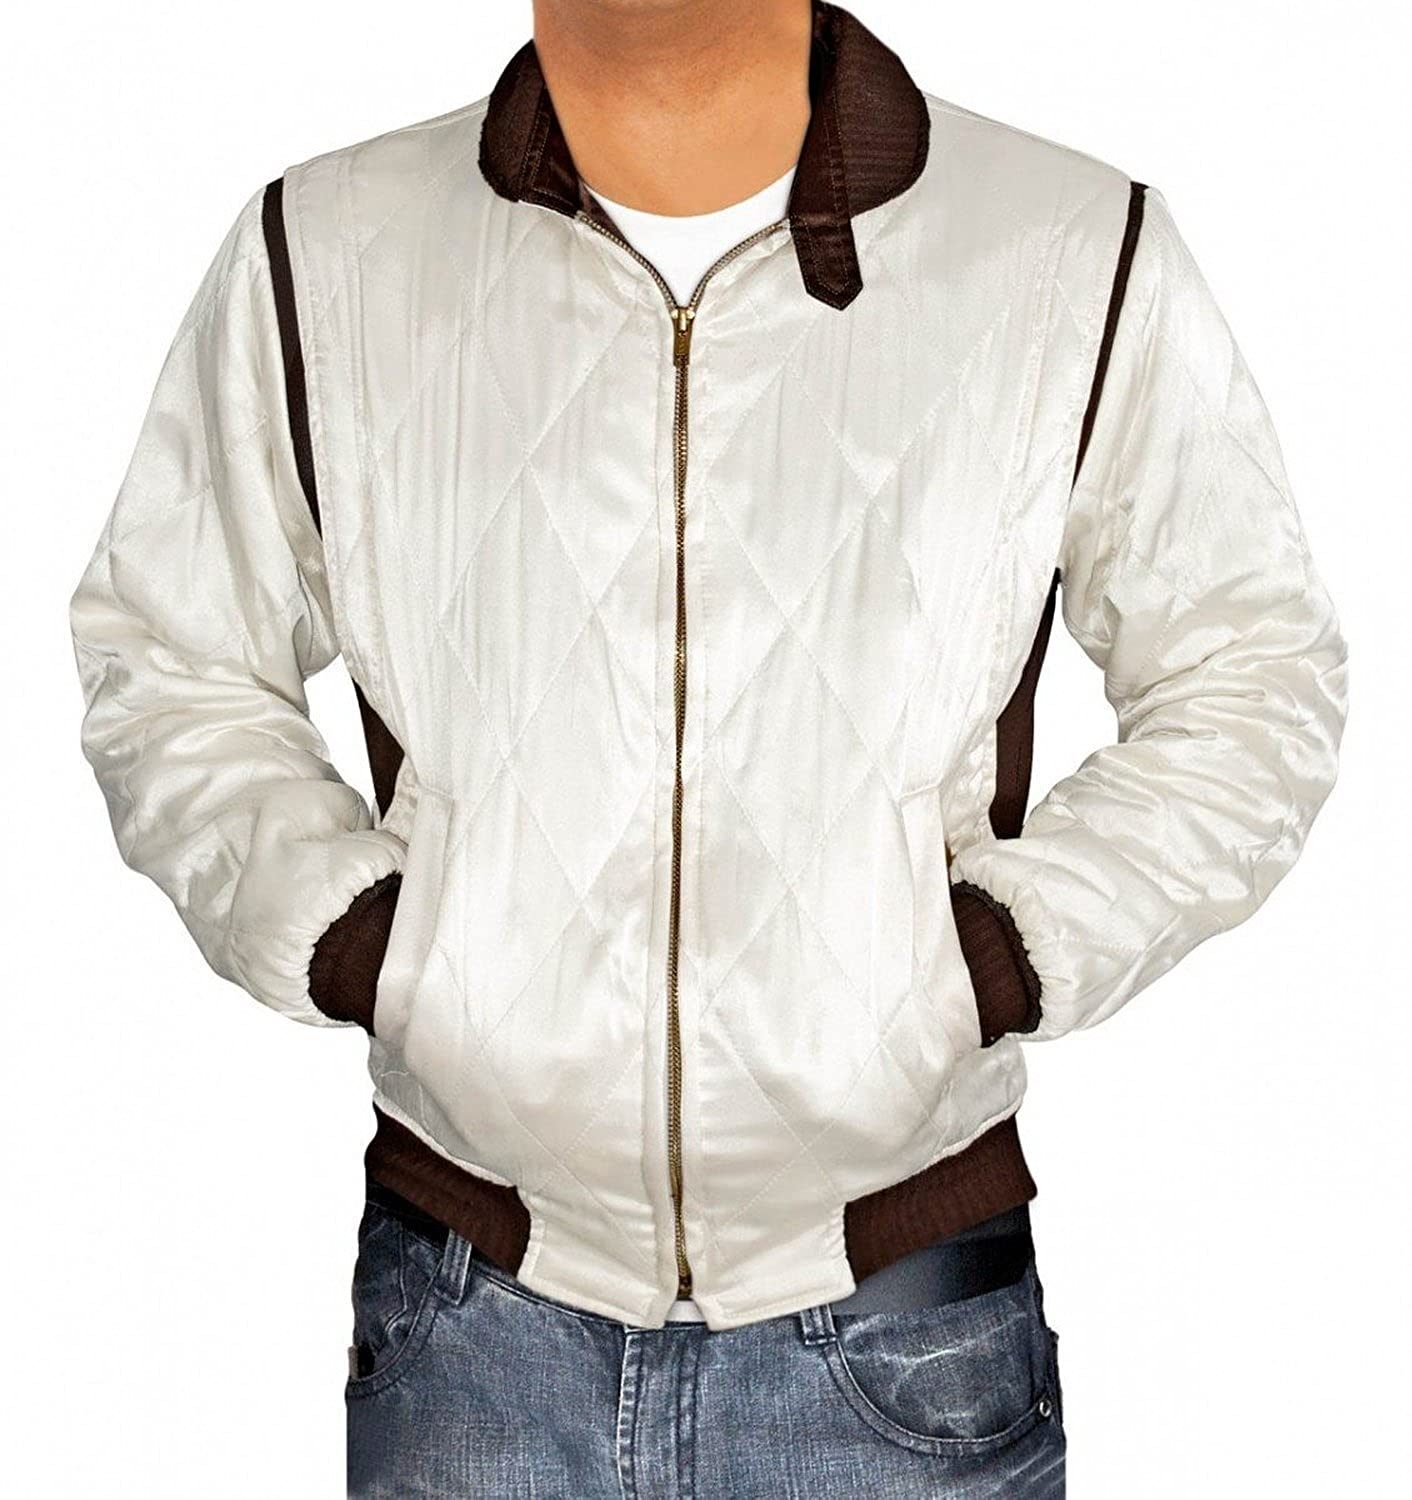 Leather jacket repair ottawa - Amazon Com Drive Jacket White Satin Mens Quilted Jacket Best Seller Clothing